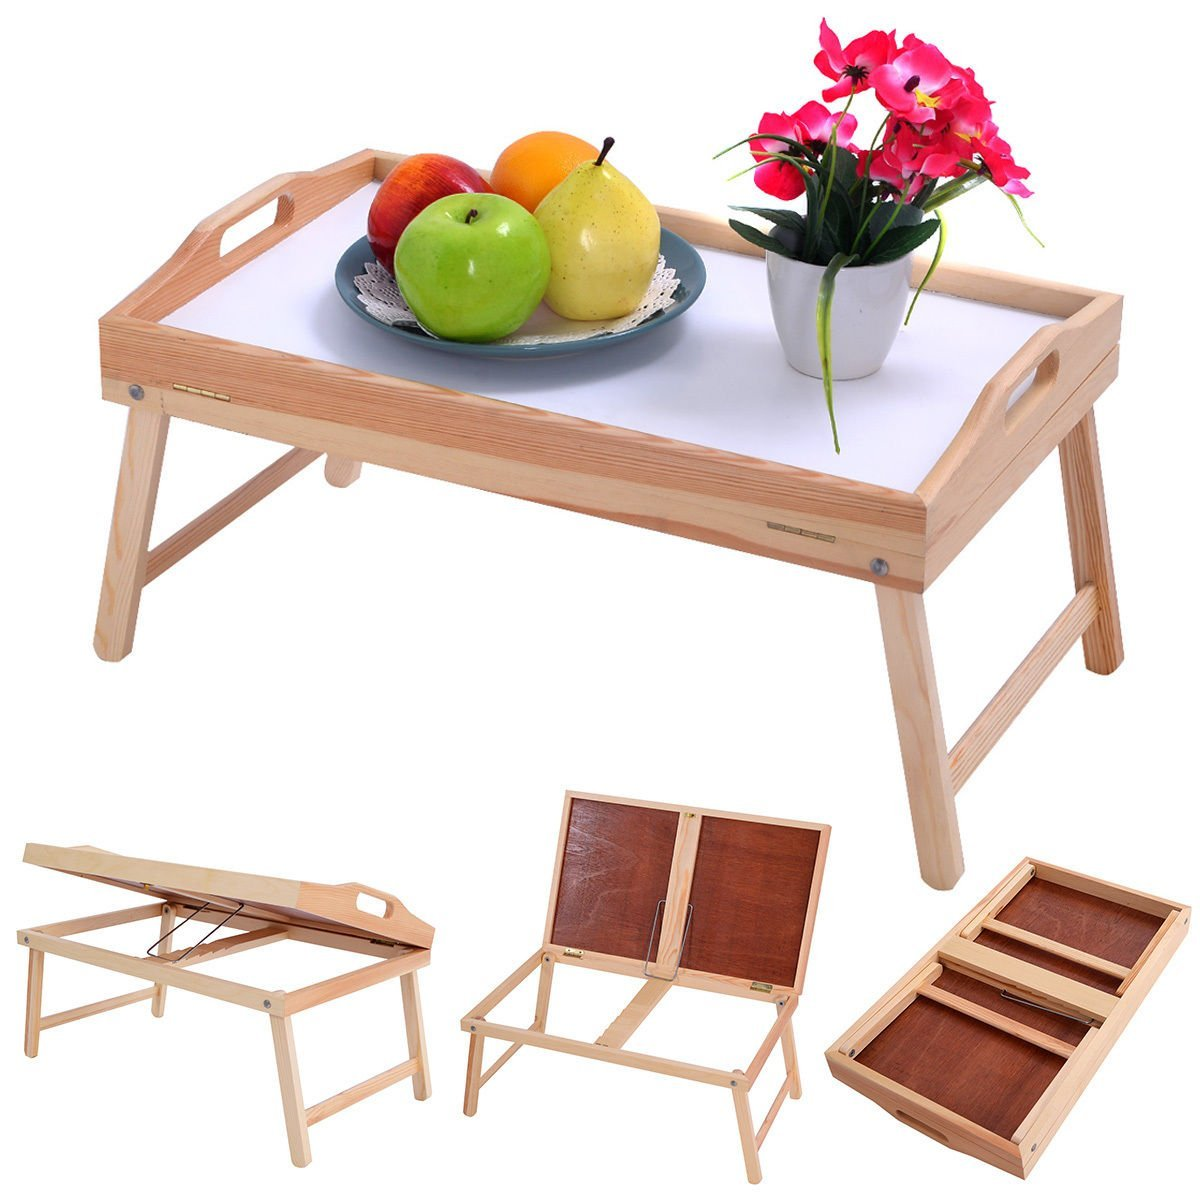 Get Quotations Wood Bed Breakfast Tray Laptop Desk Food Serving Folding Legs Table